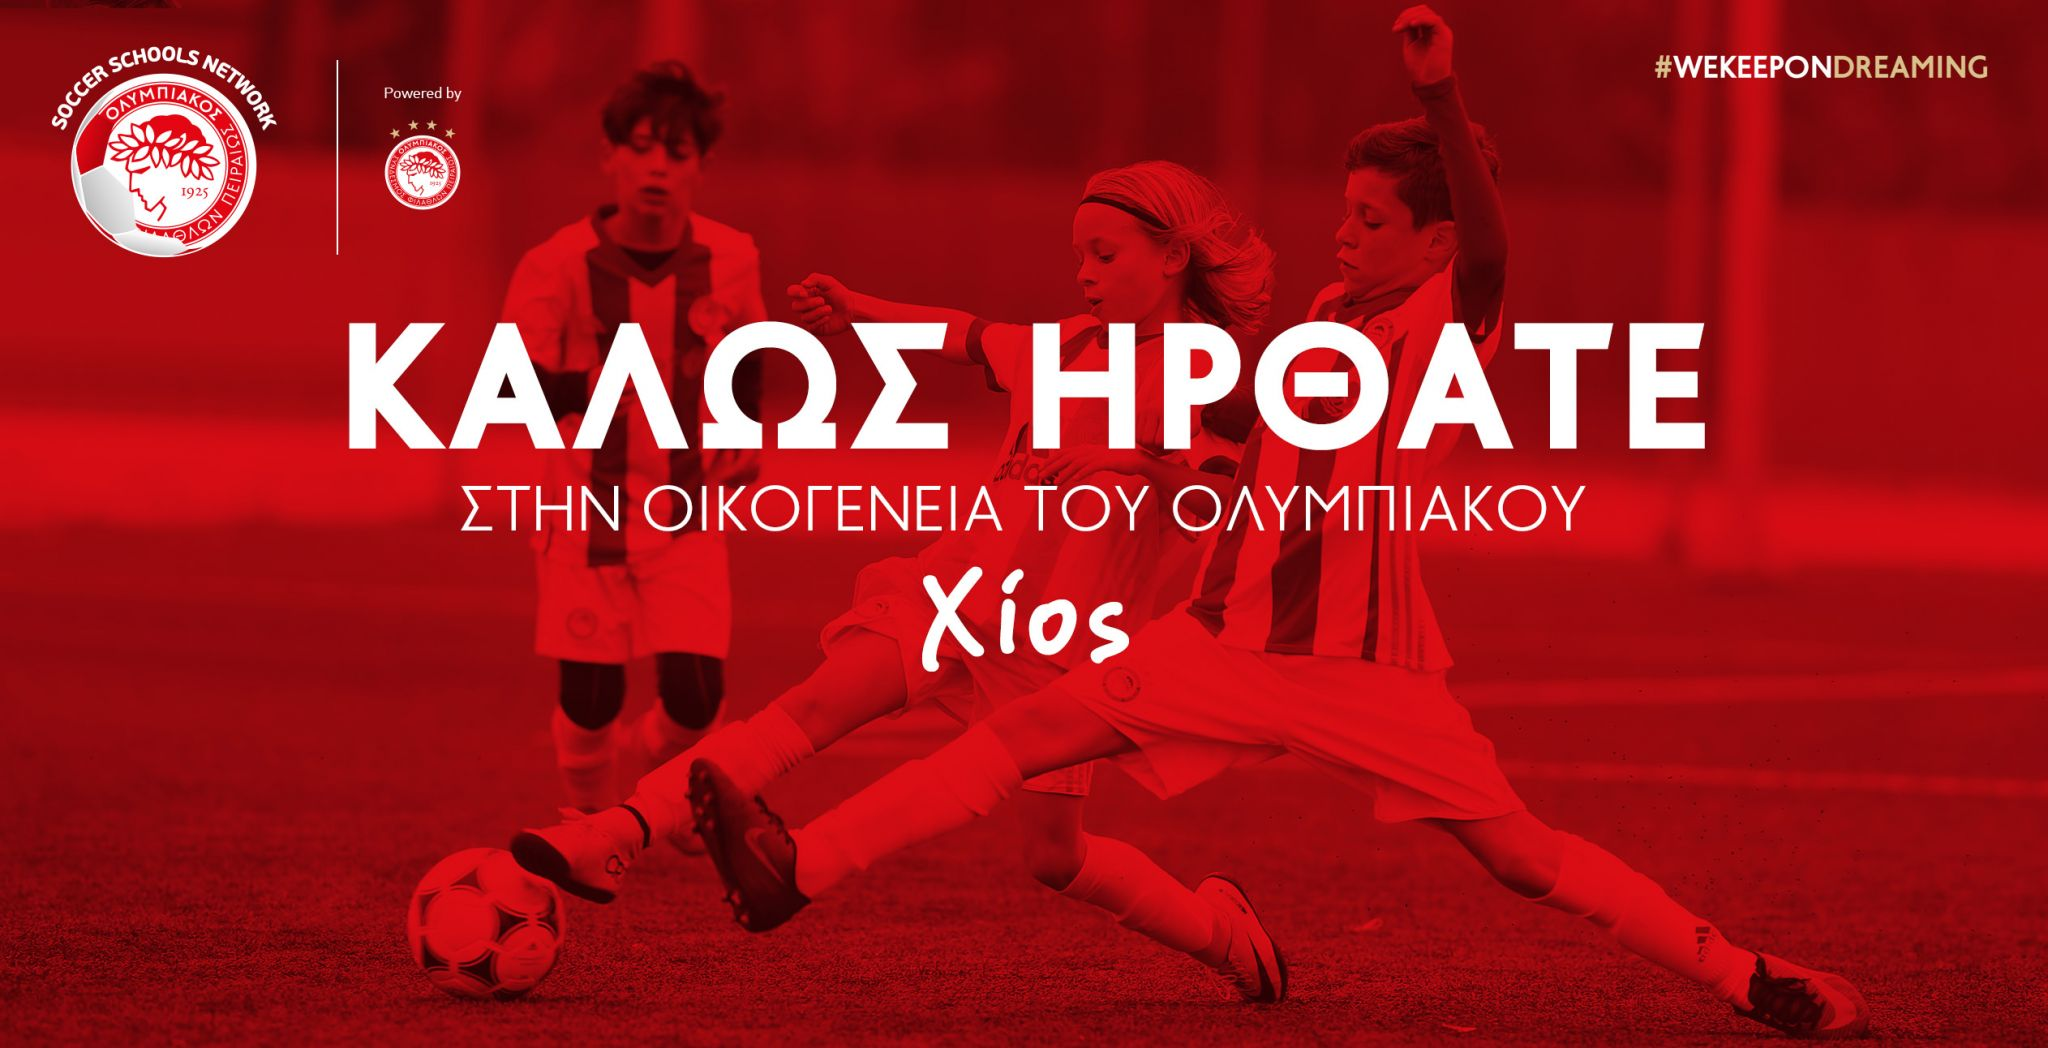 https://www.olympiacos.org/wp-content/uploads/2019/06/10/Olympiacos_New_Soccer_School_Chios_2019_2525x1292.jpg